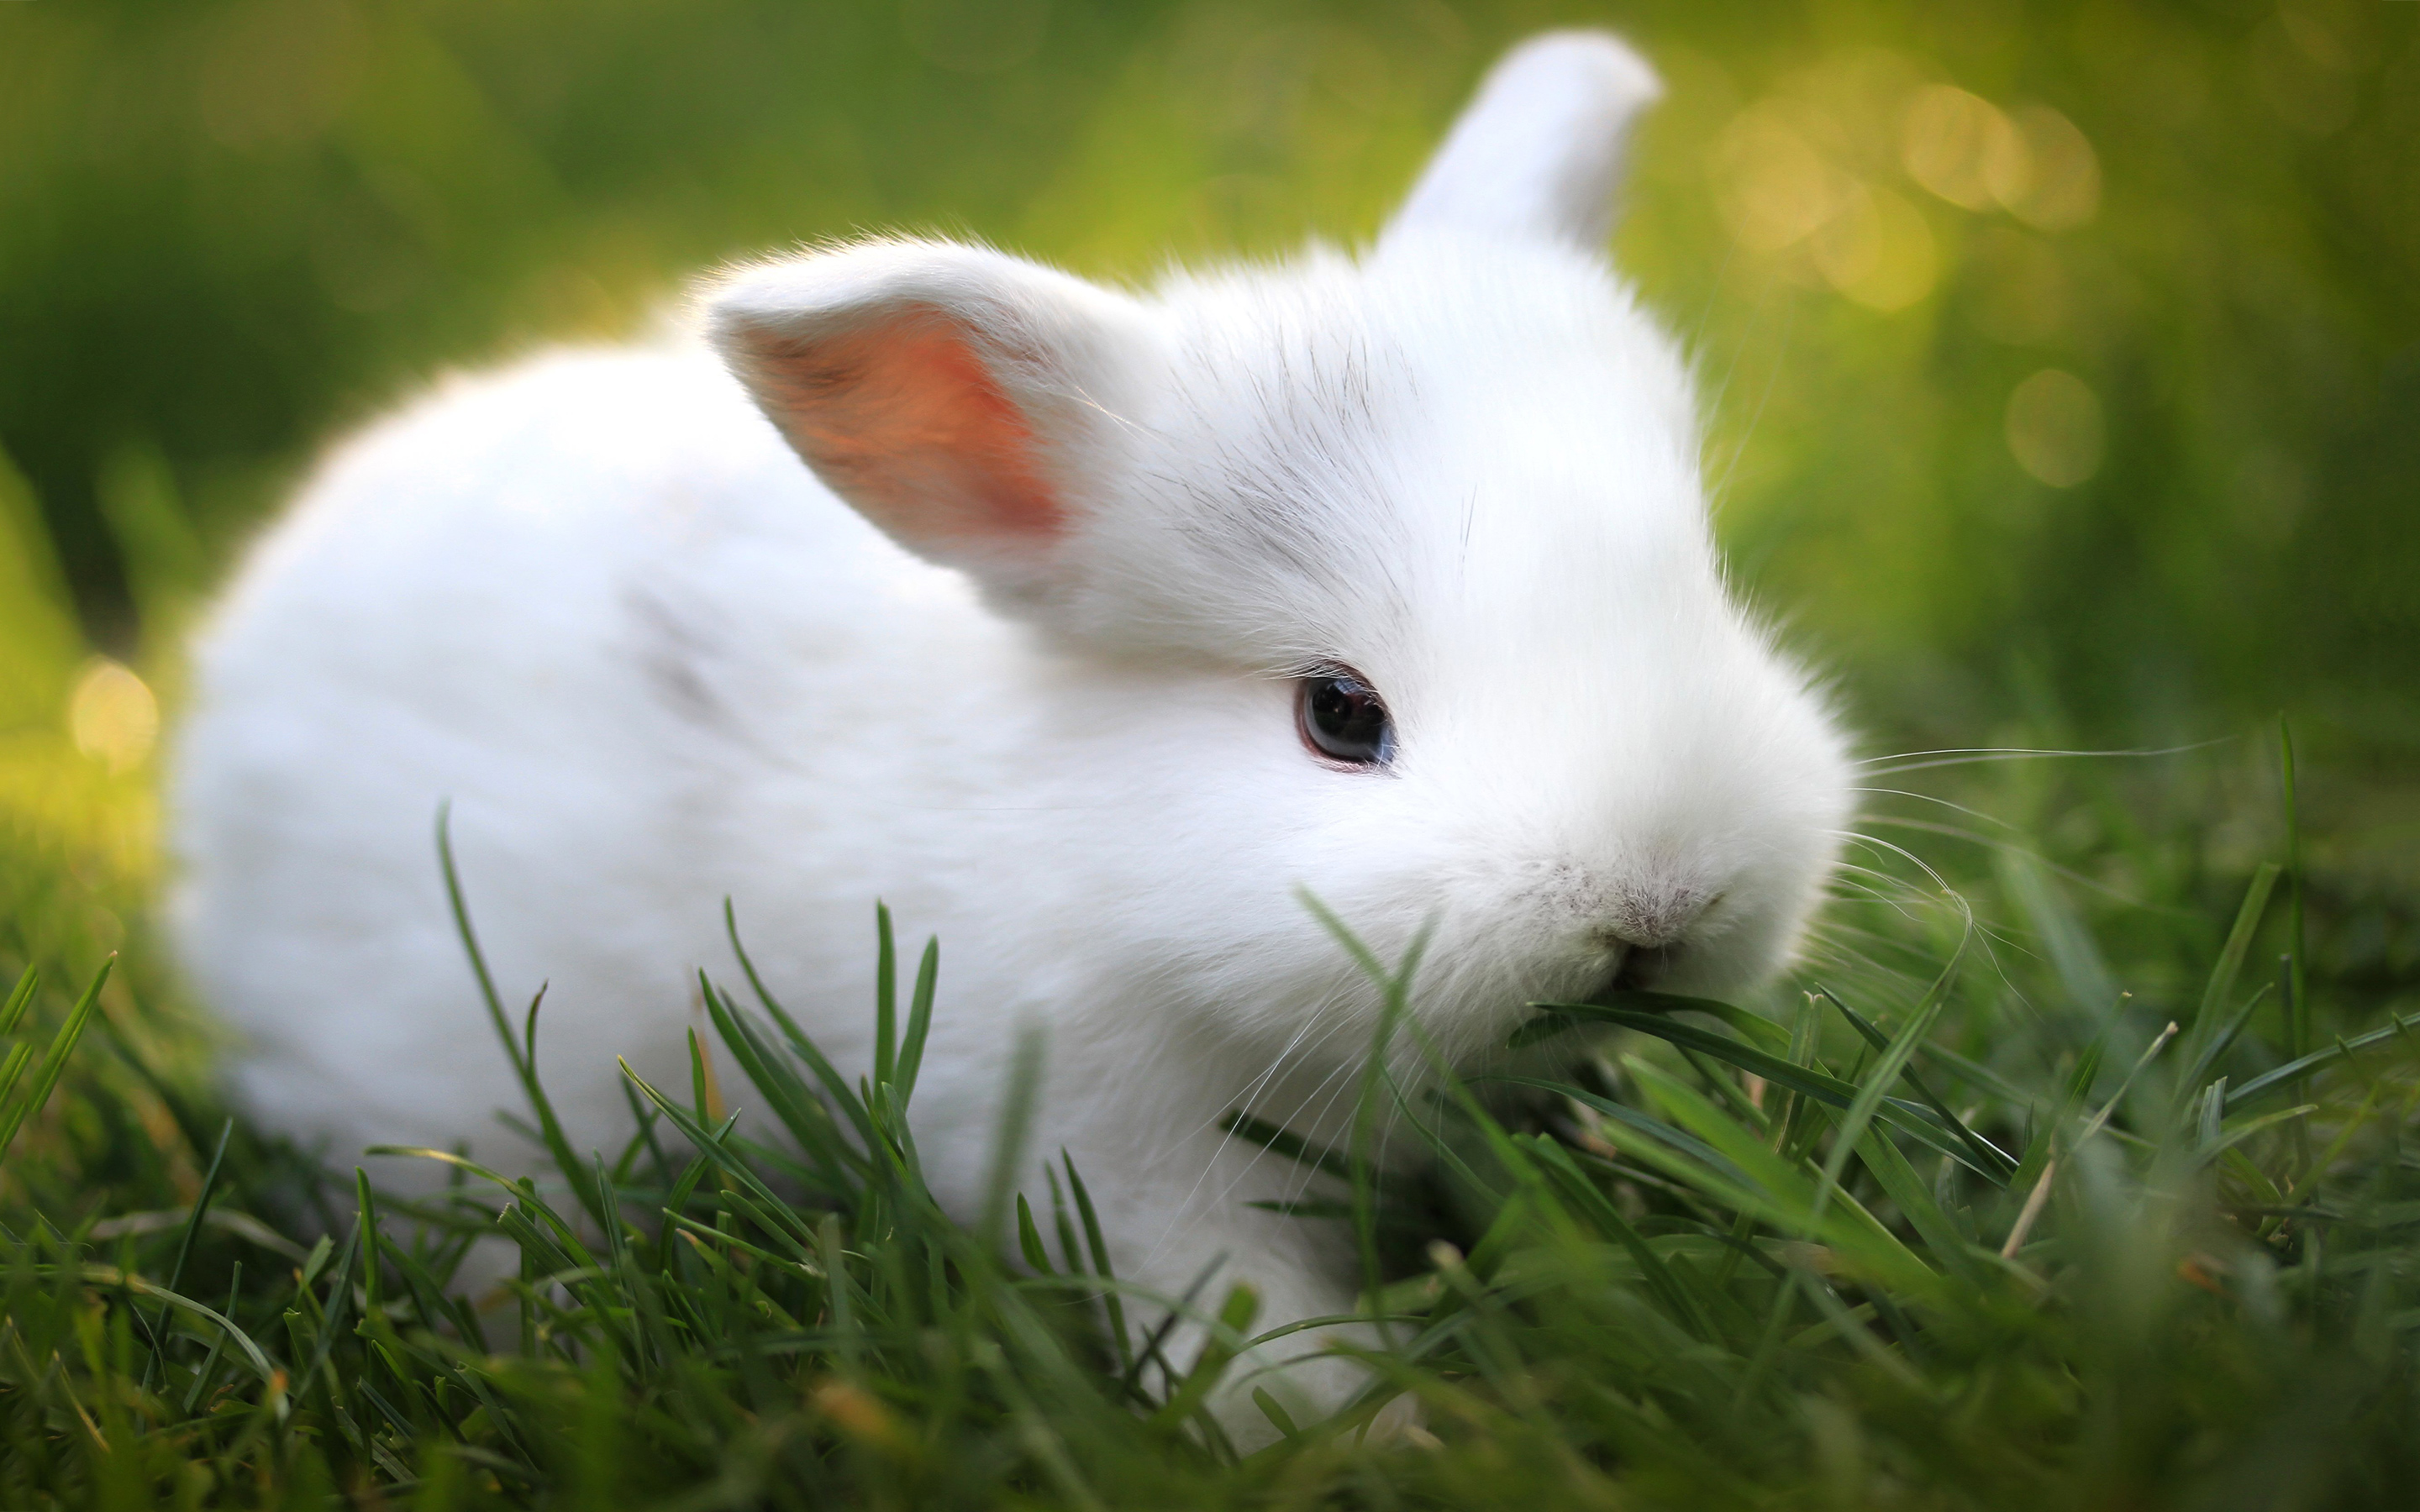 Cute white bunny